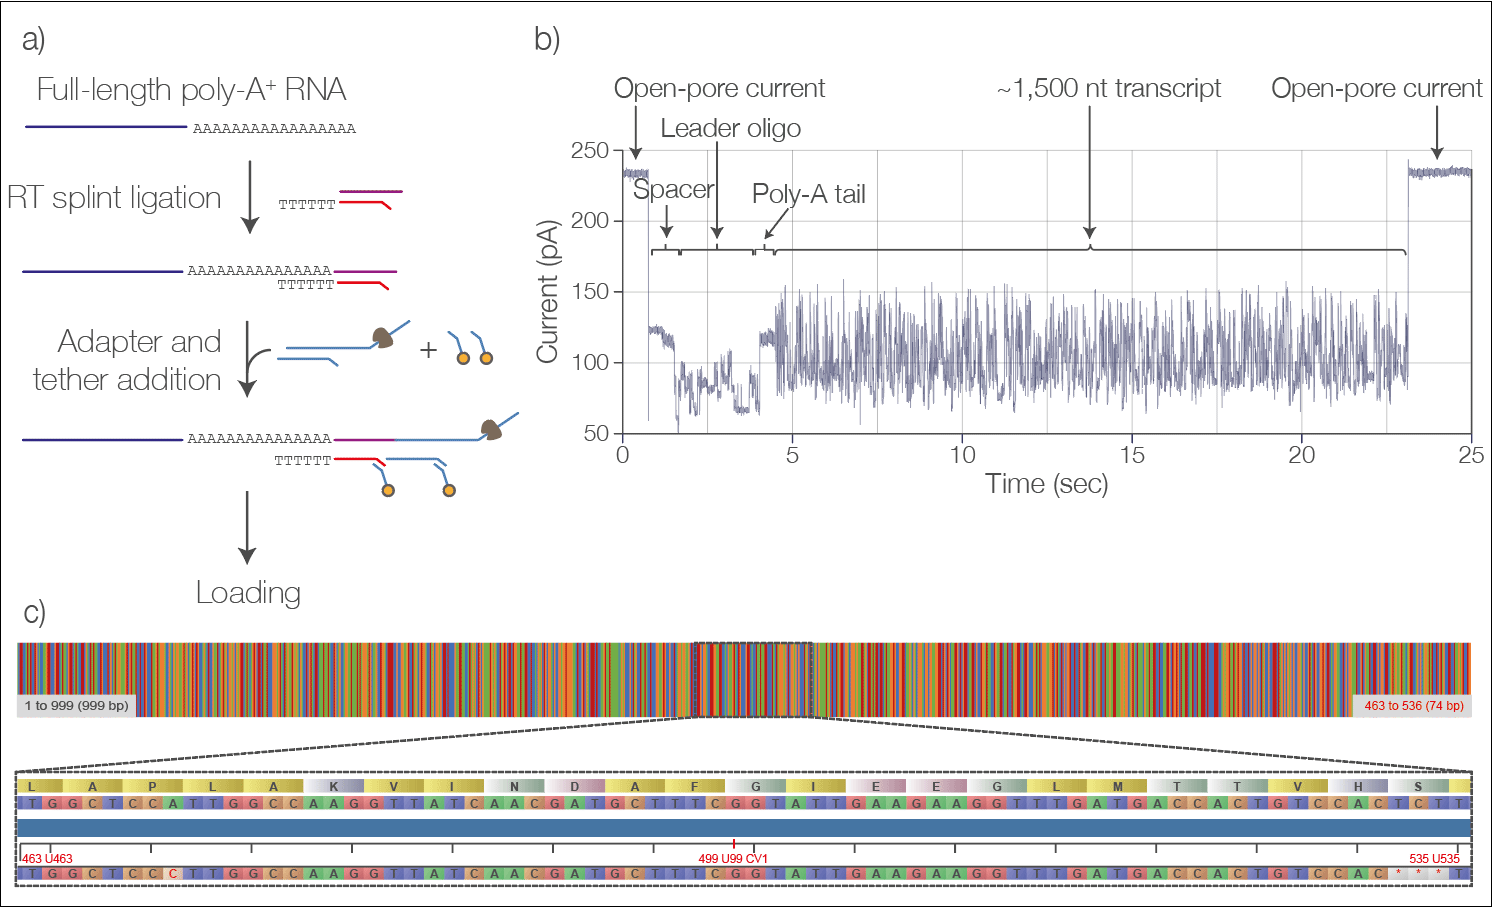 Nanopores allow direct sequencing of RNA strands, giving